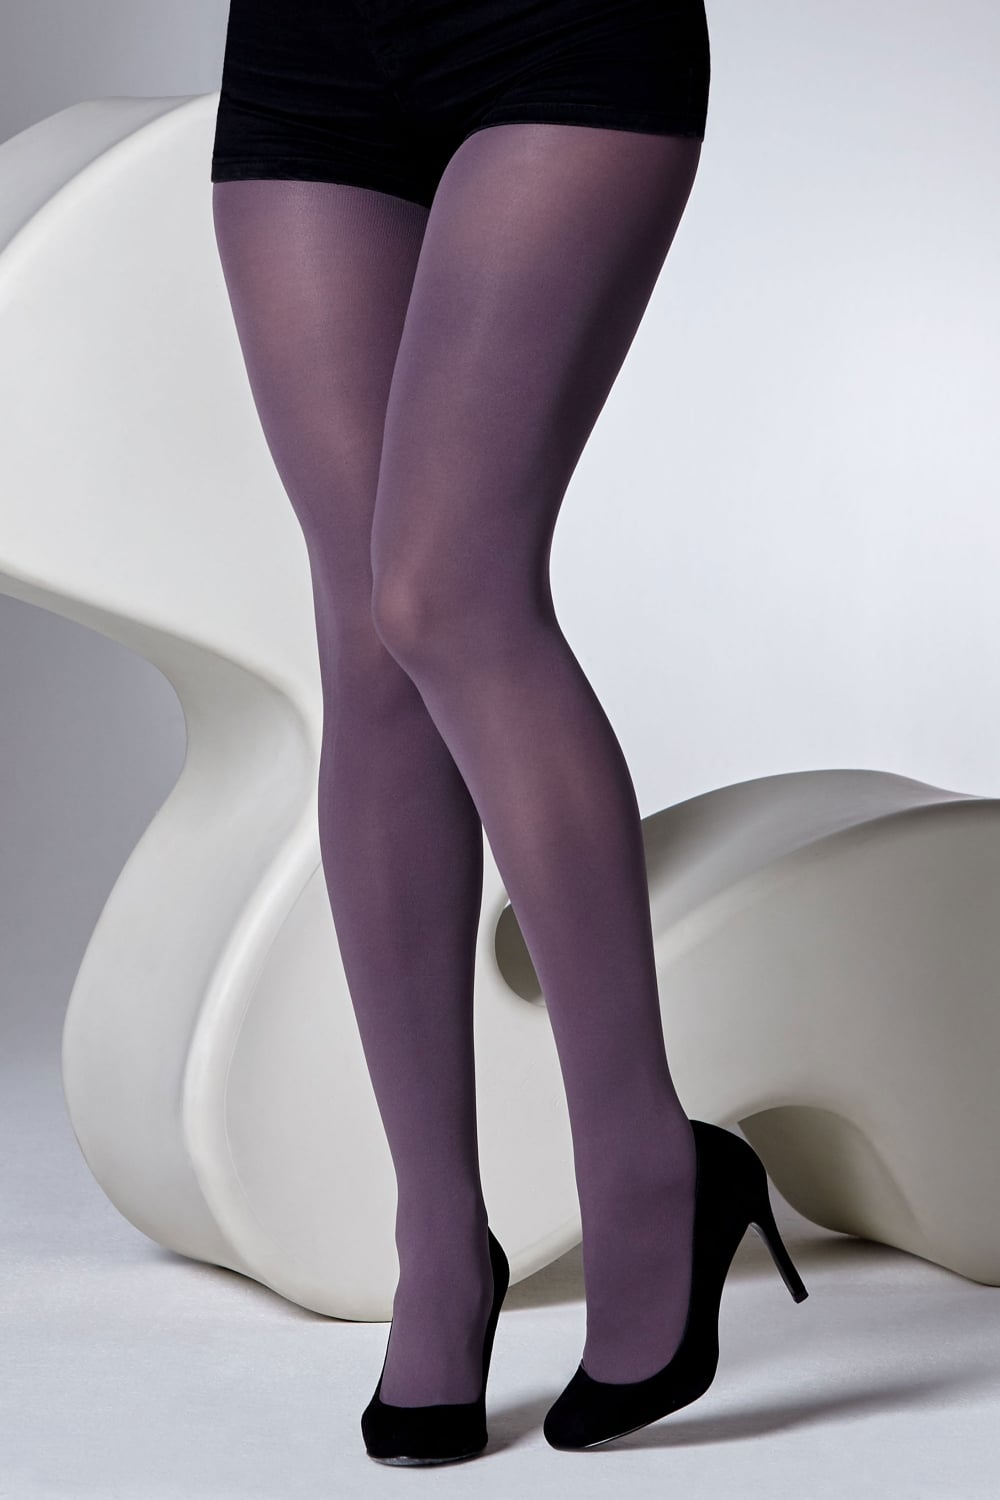 ff6d1f82f 100 Denier Luxury Opaque Tights by Gipsy